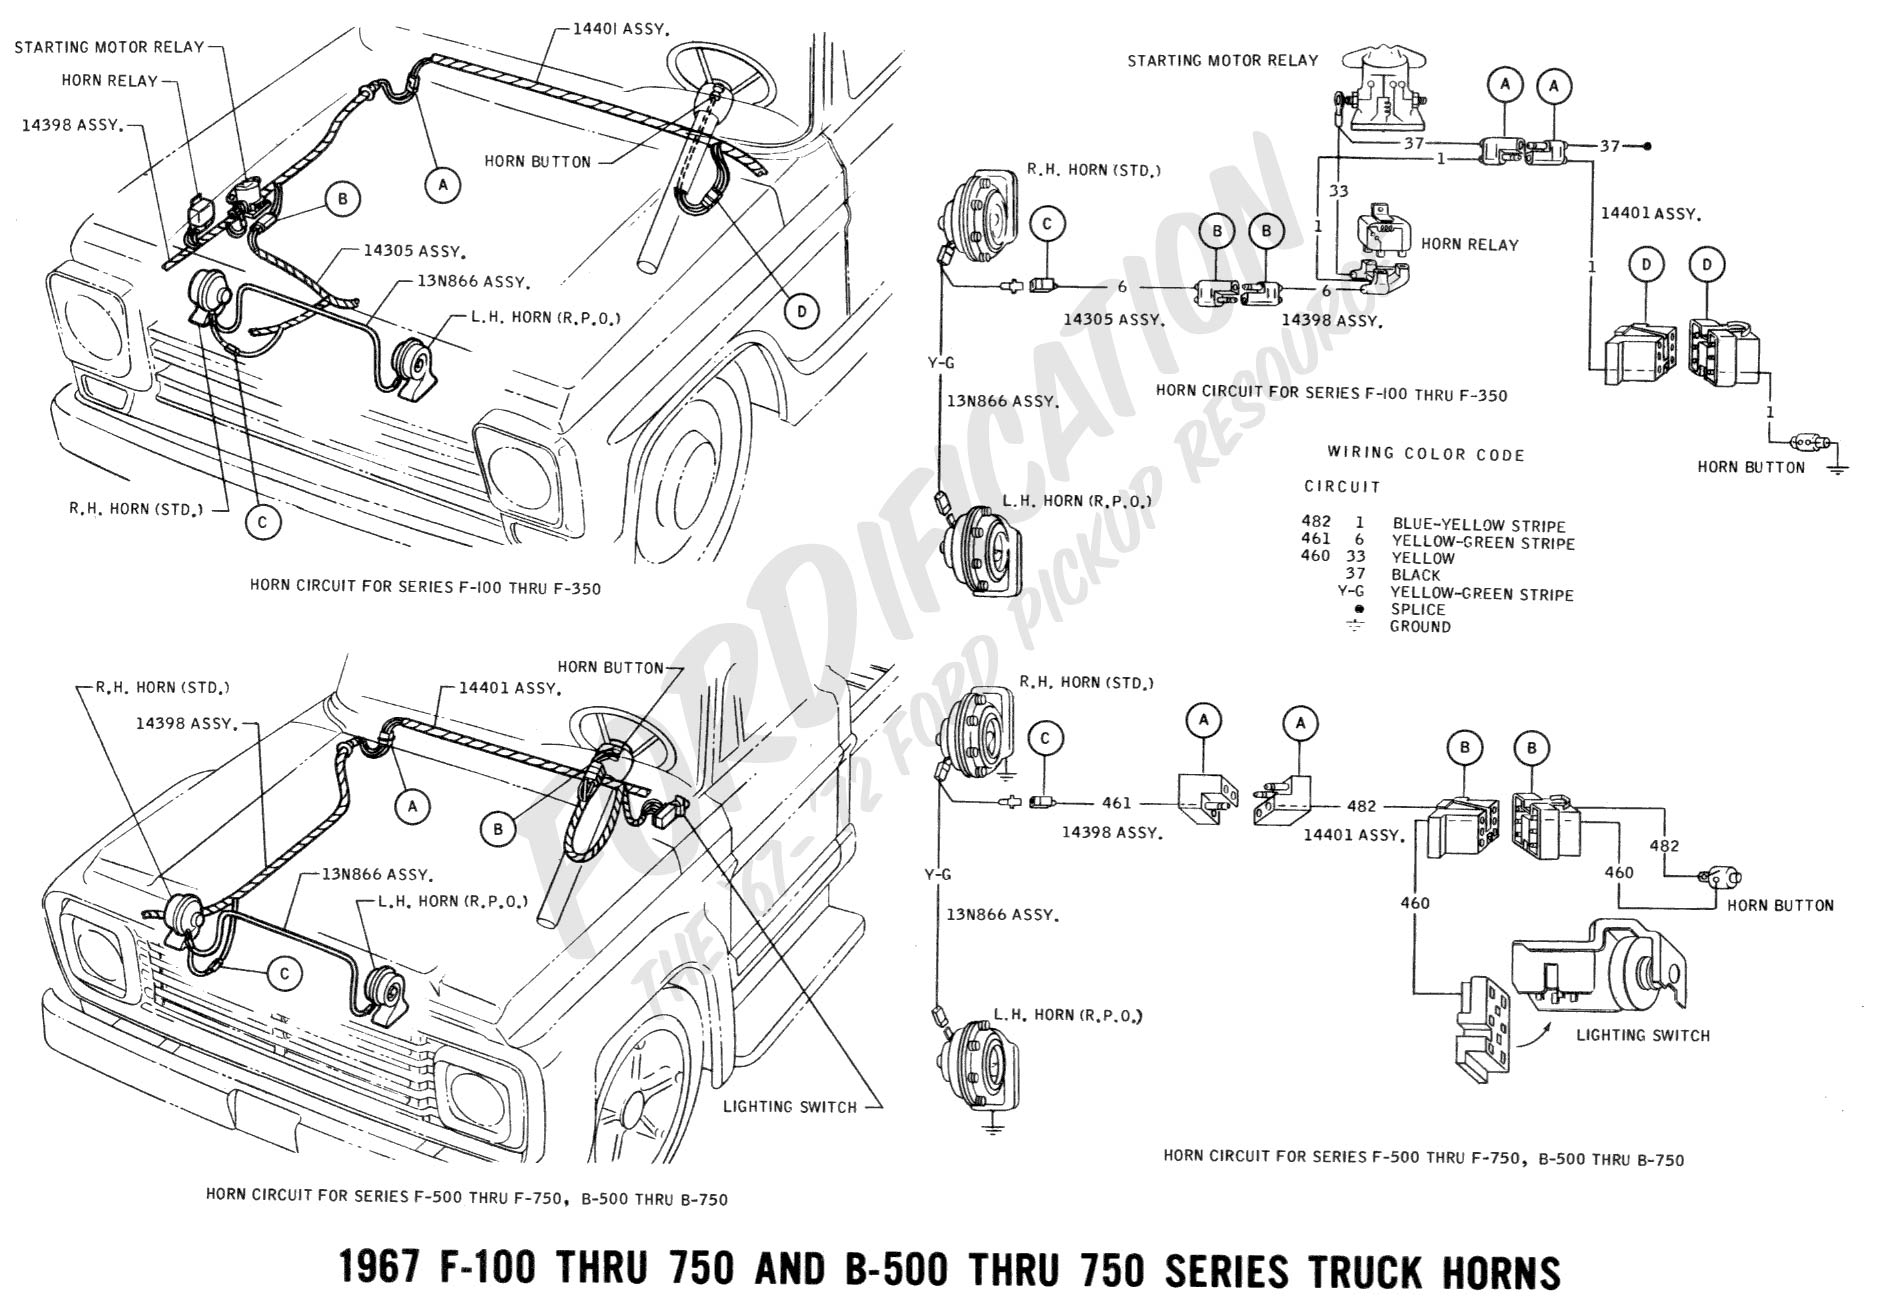 1976 ford van wiring trusted wiring diagrams rh kroud co Bronco Wiring Diagram Tail Light Early Bronco Wiring Diagram